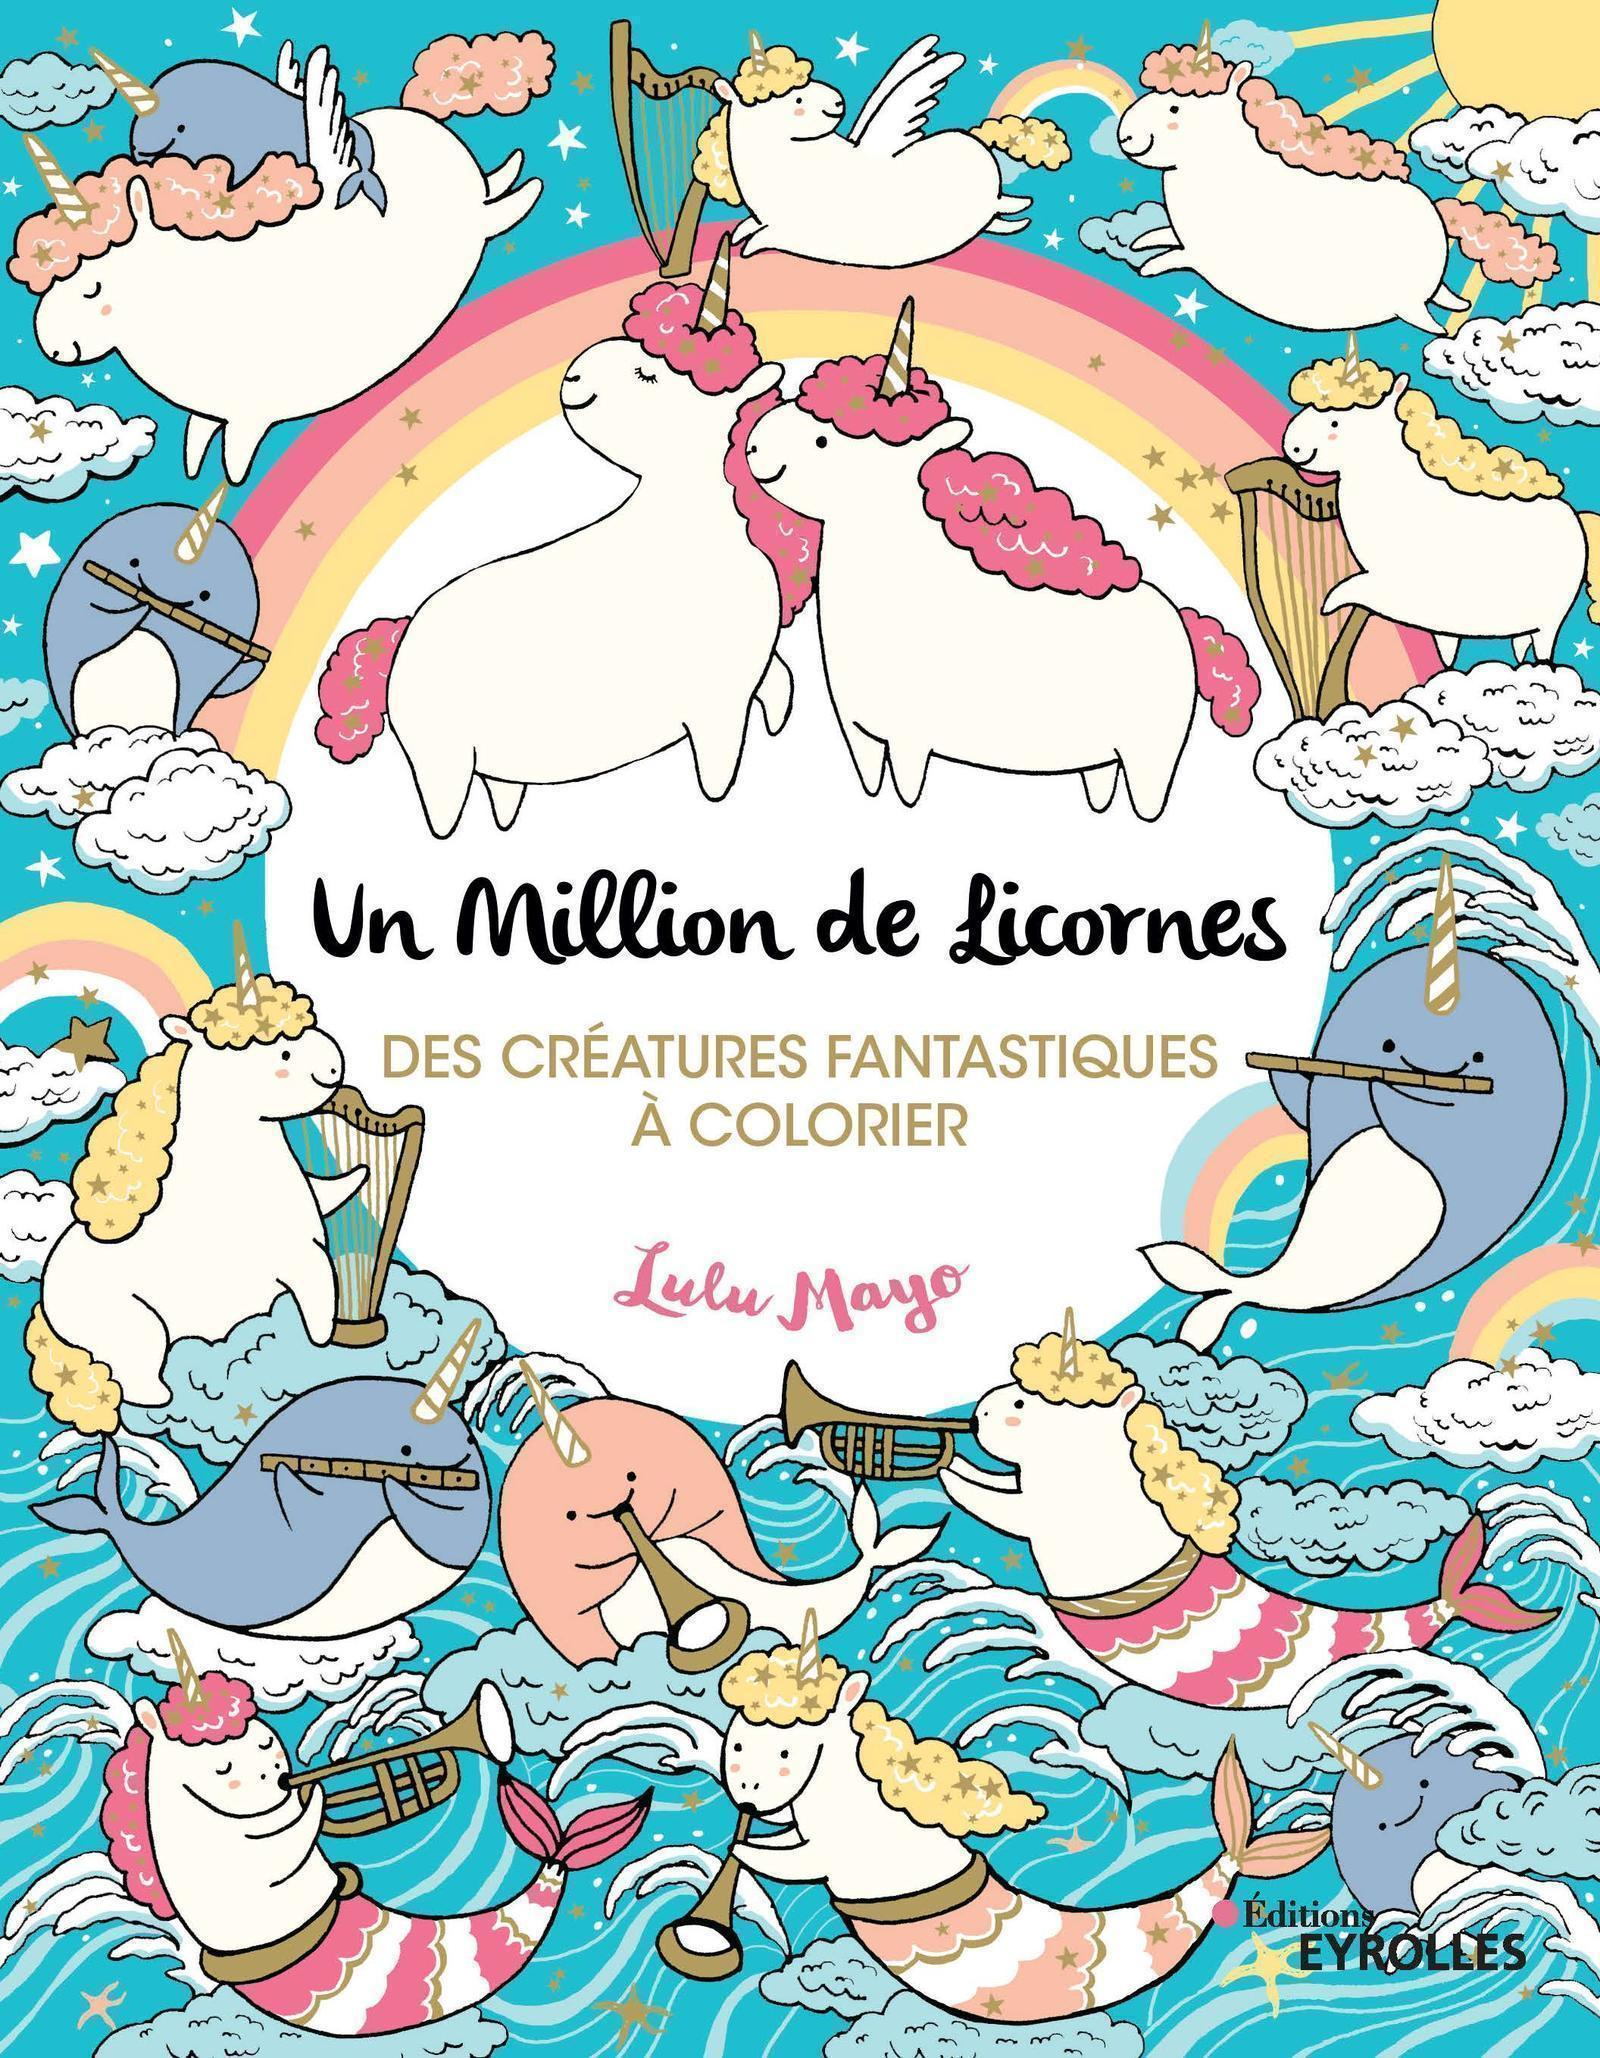 UN MILLION DE LICORNES - DES CREATURES FANTASTIQUES A COLORIER